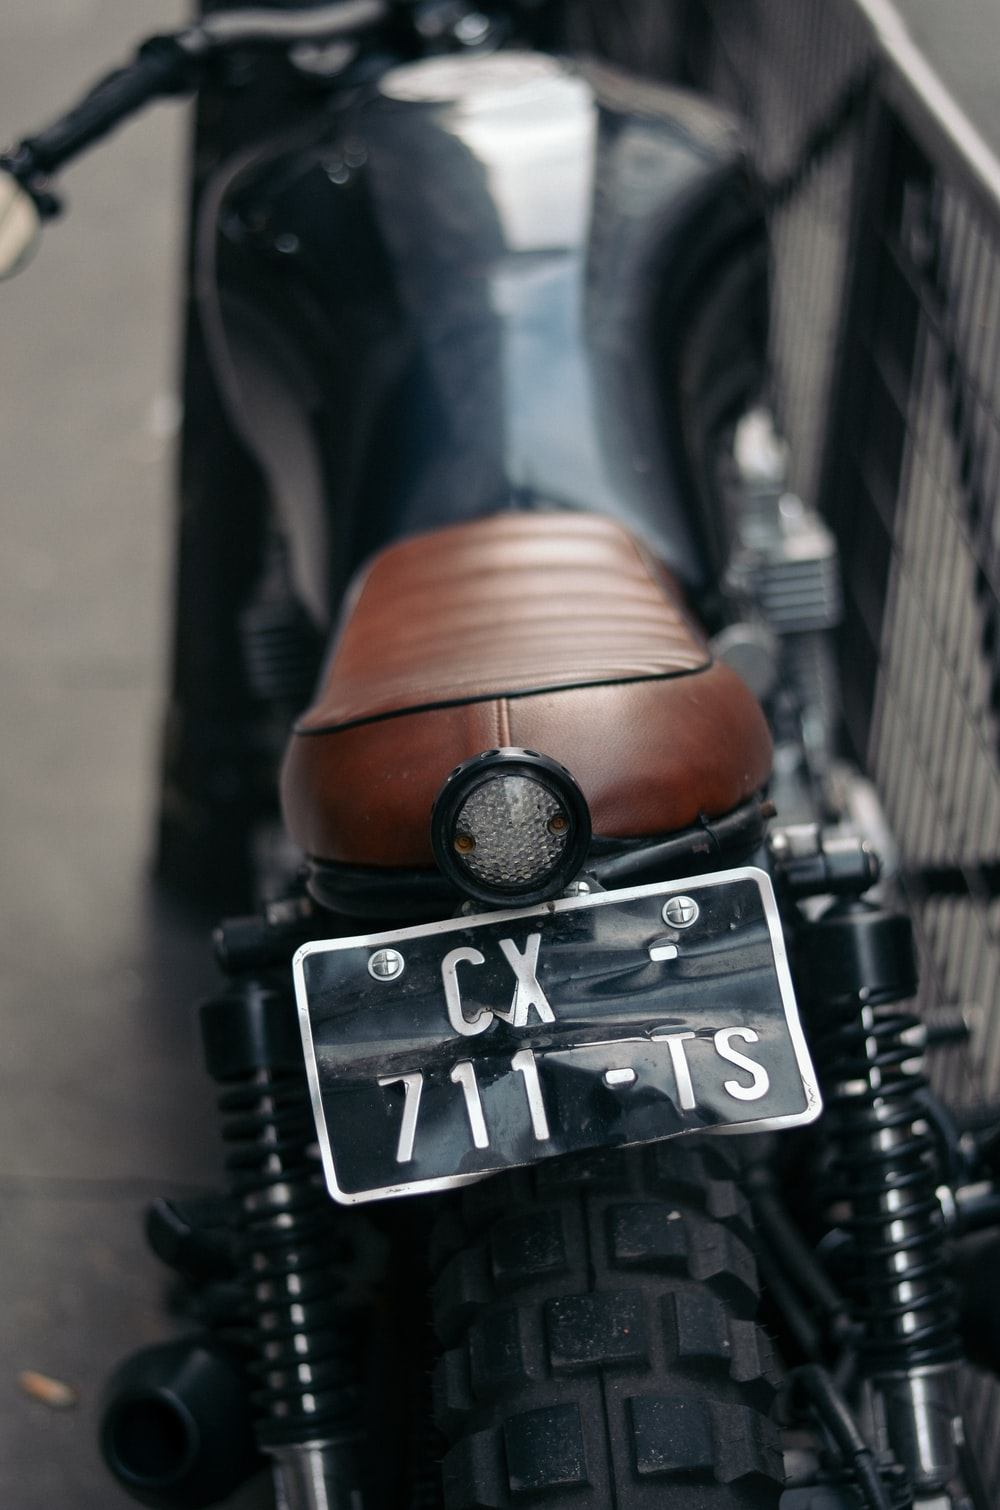 black and brown caferacer motorcycle park near metal railings